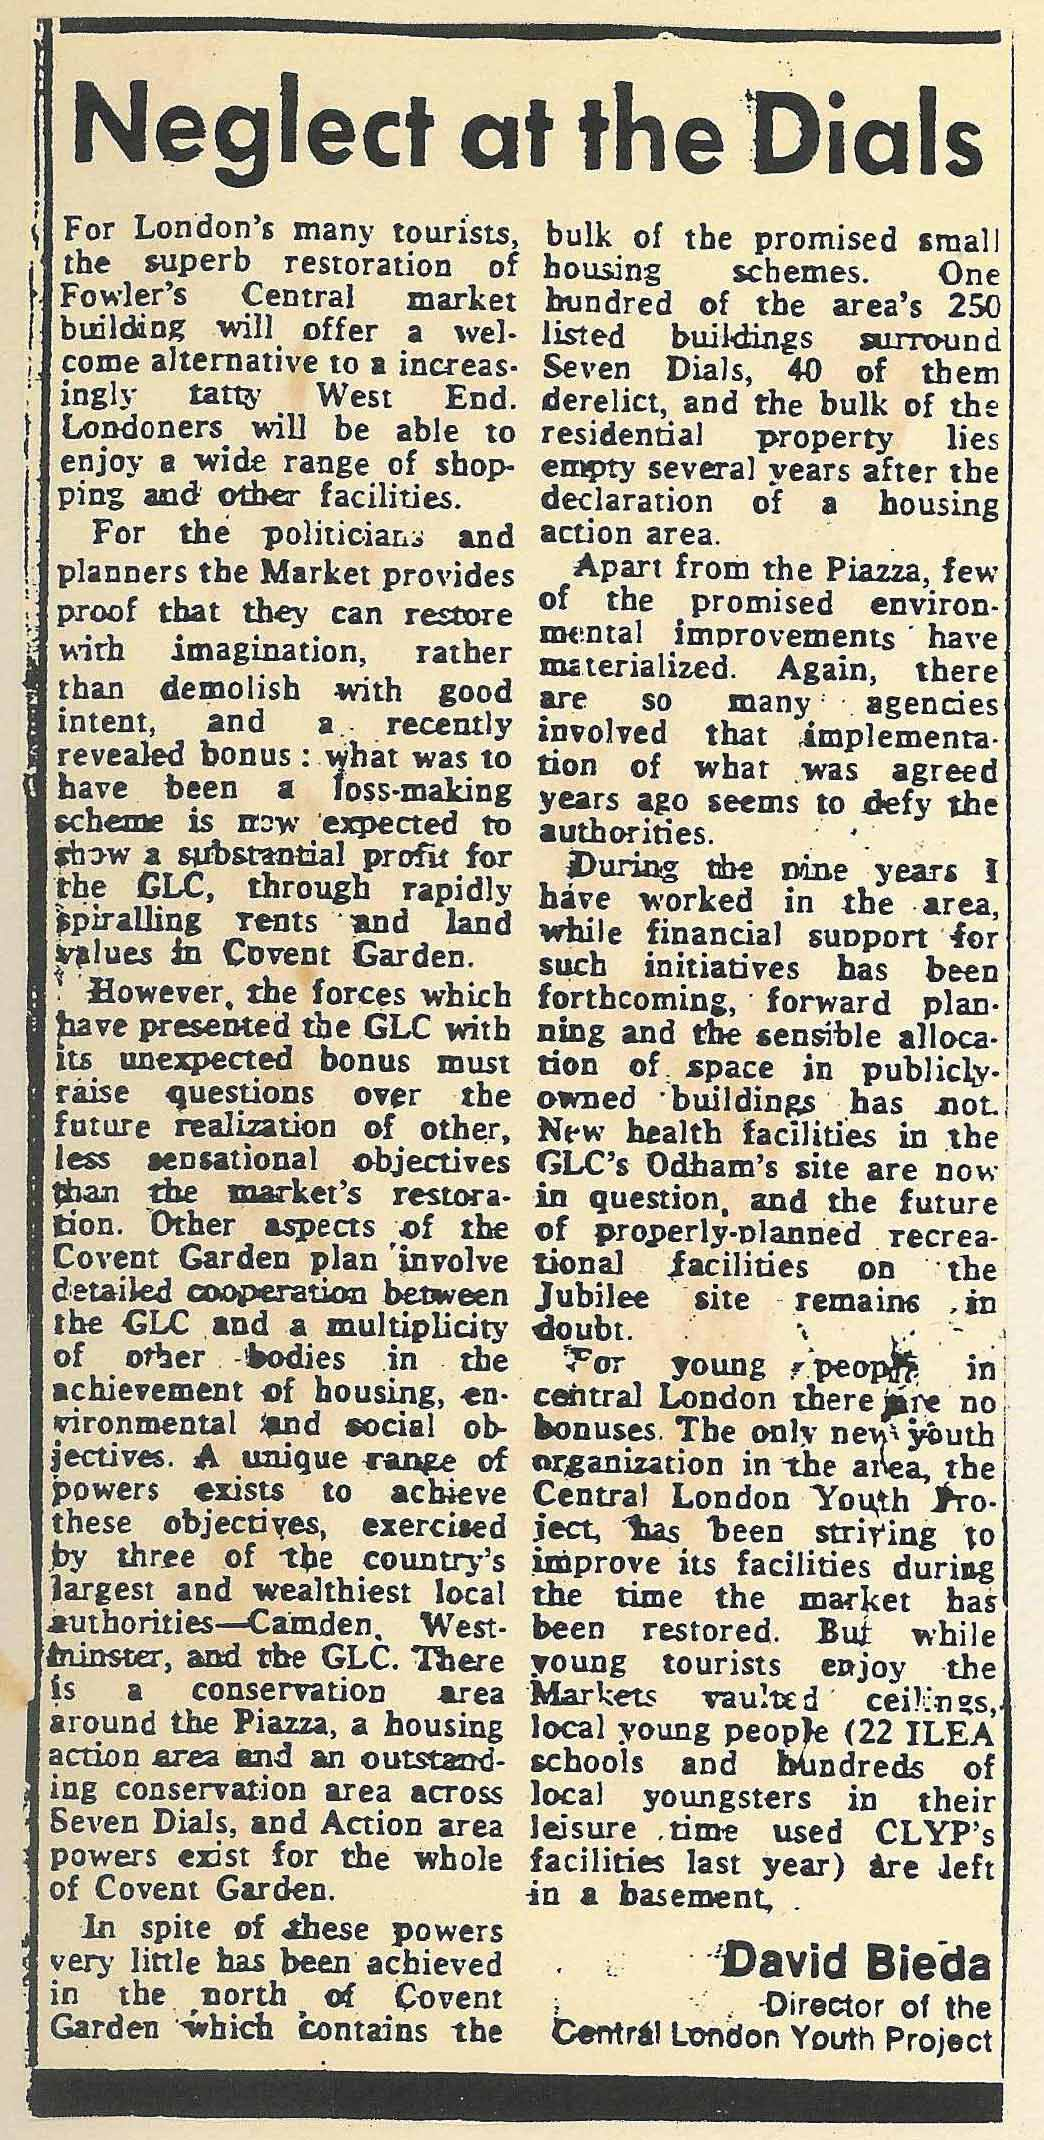 19 June 1985 � Times: Neglect at the Dials, by David Bieda, Director of the Central London Youth Project.